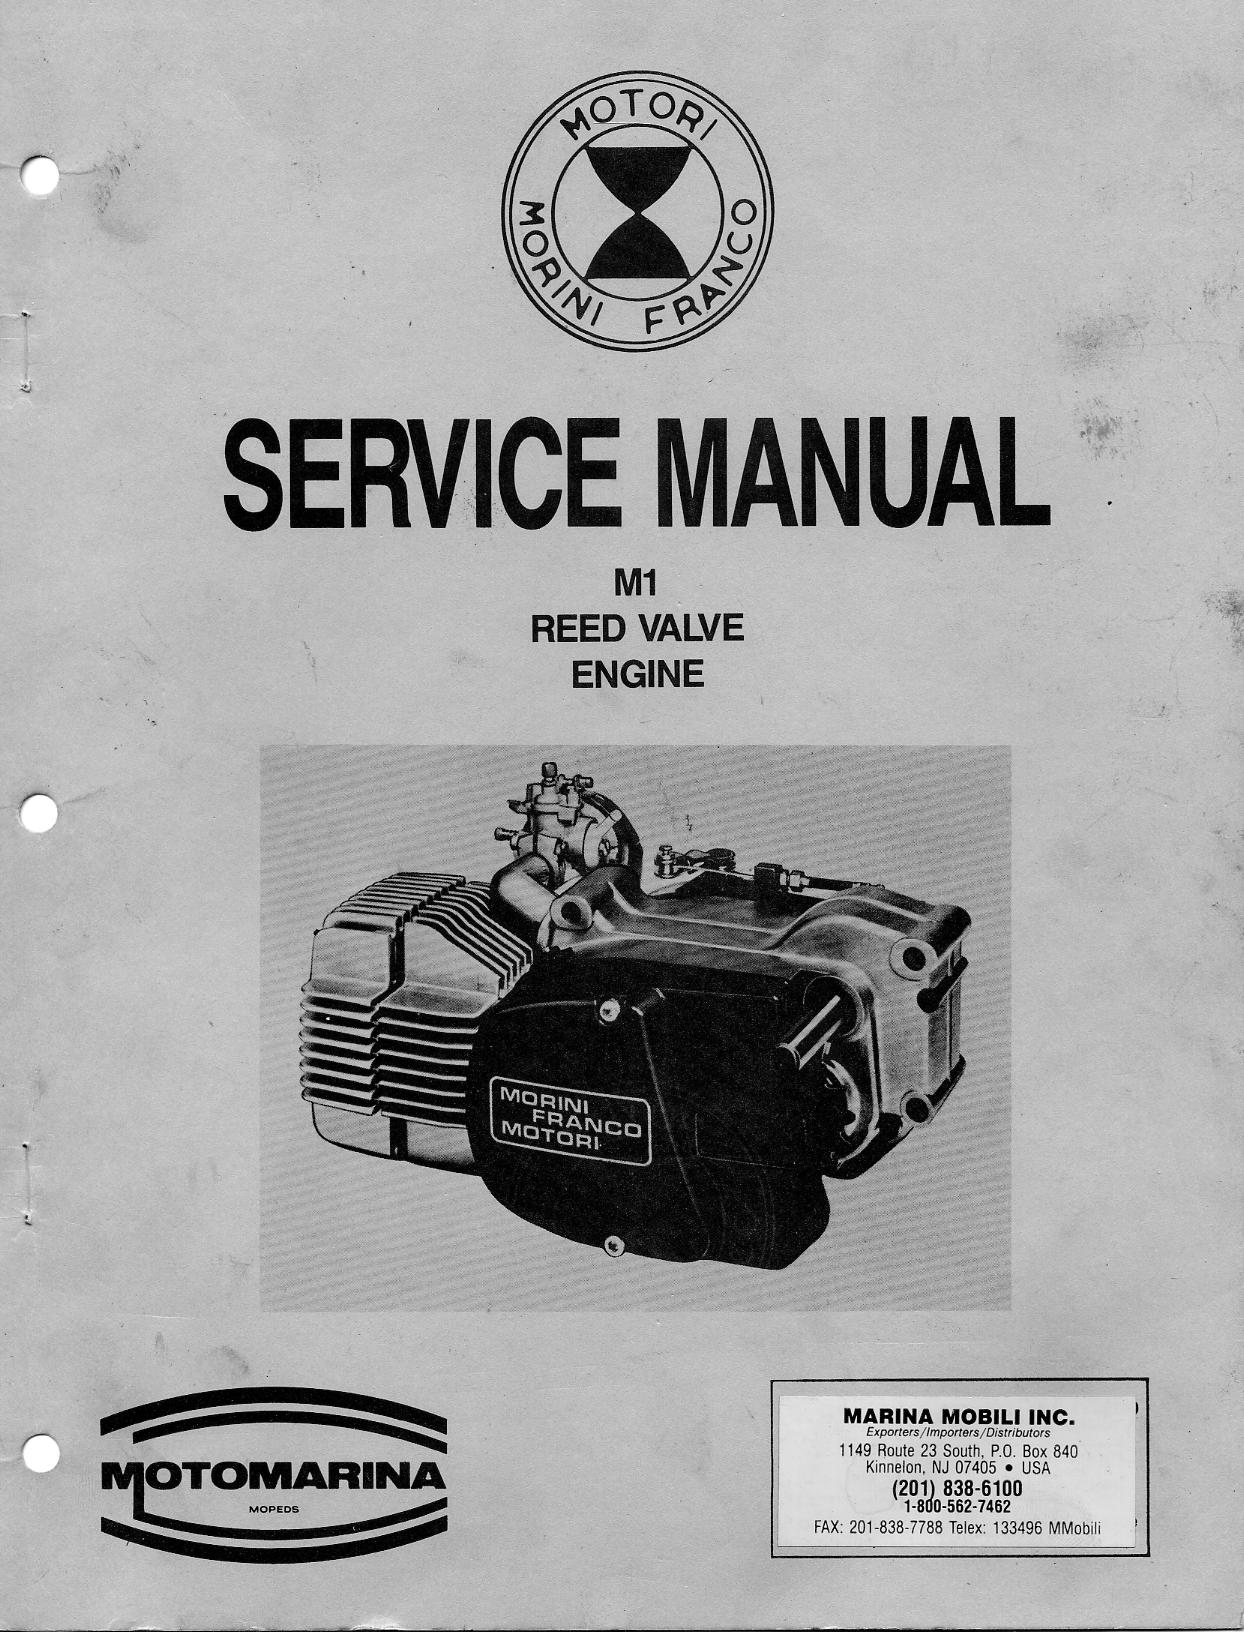 Franco Morini M1 Service Manual.jpg